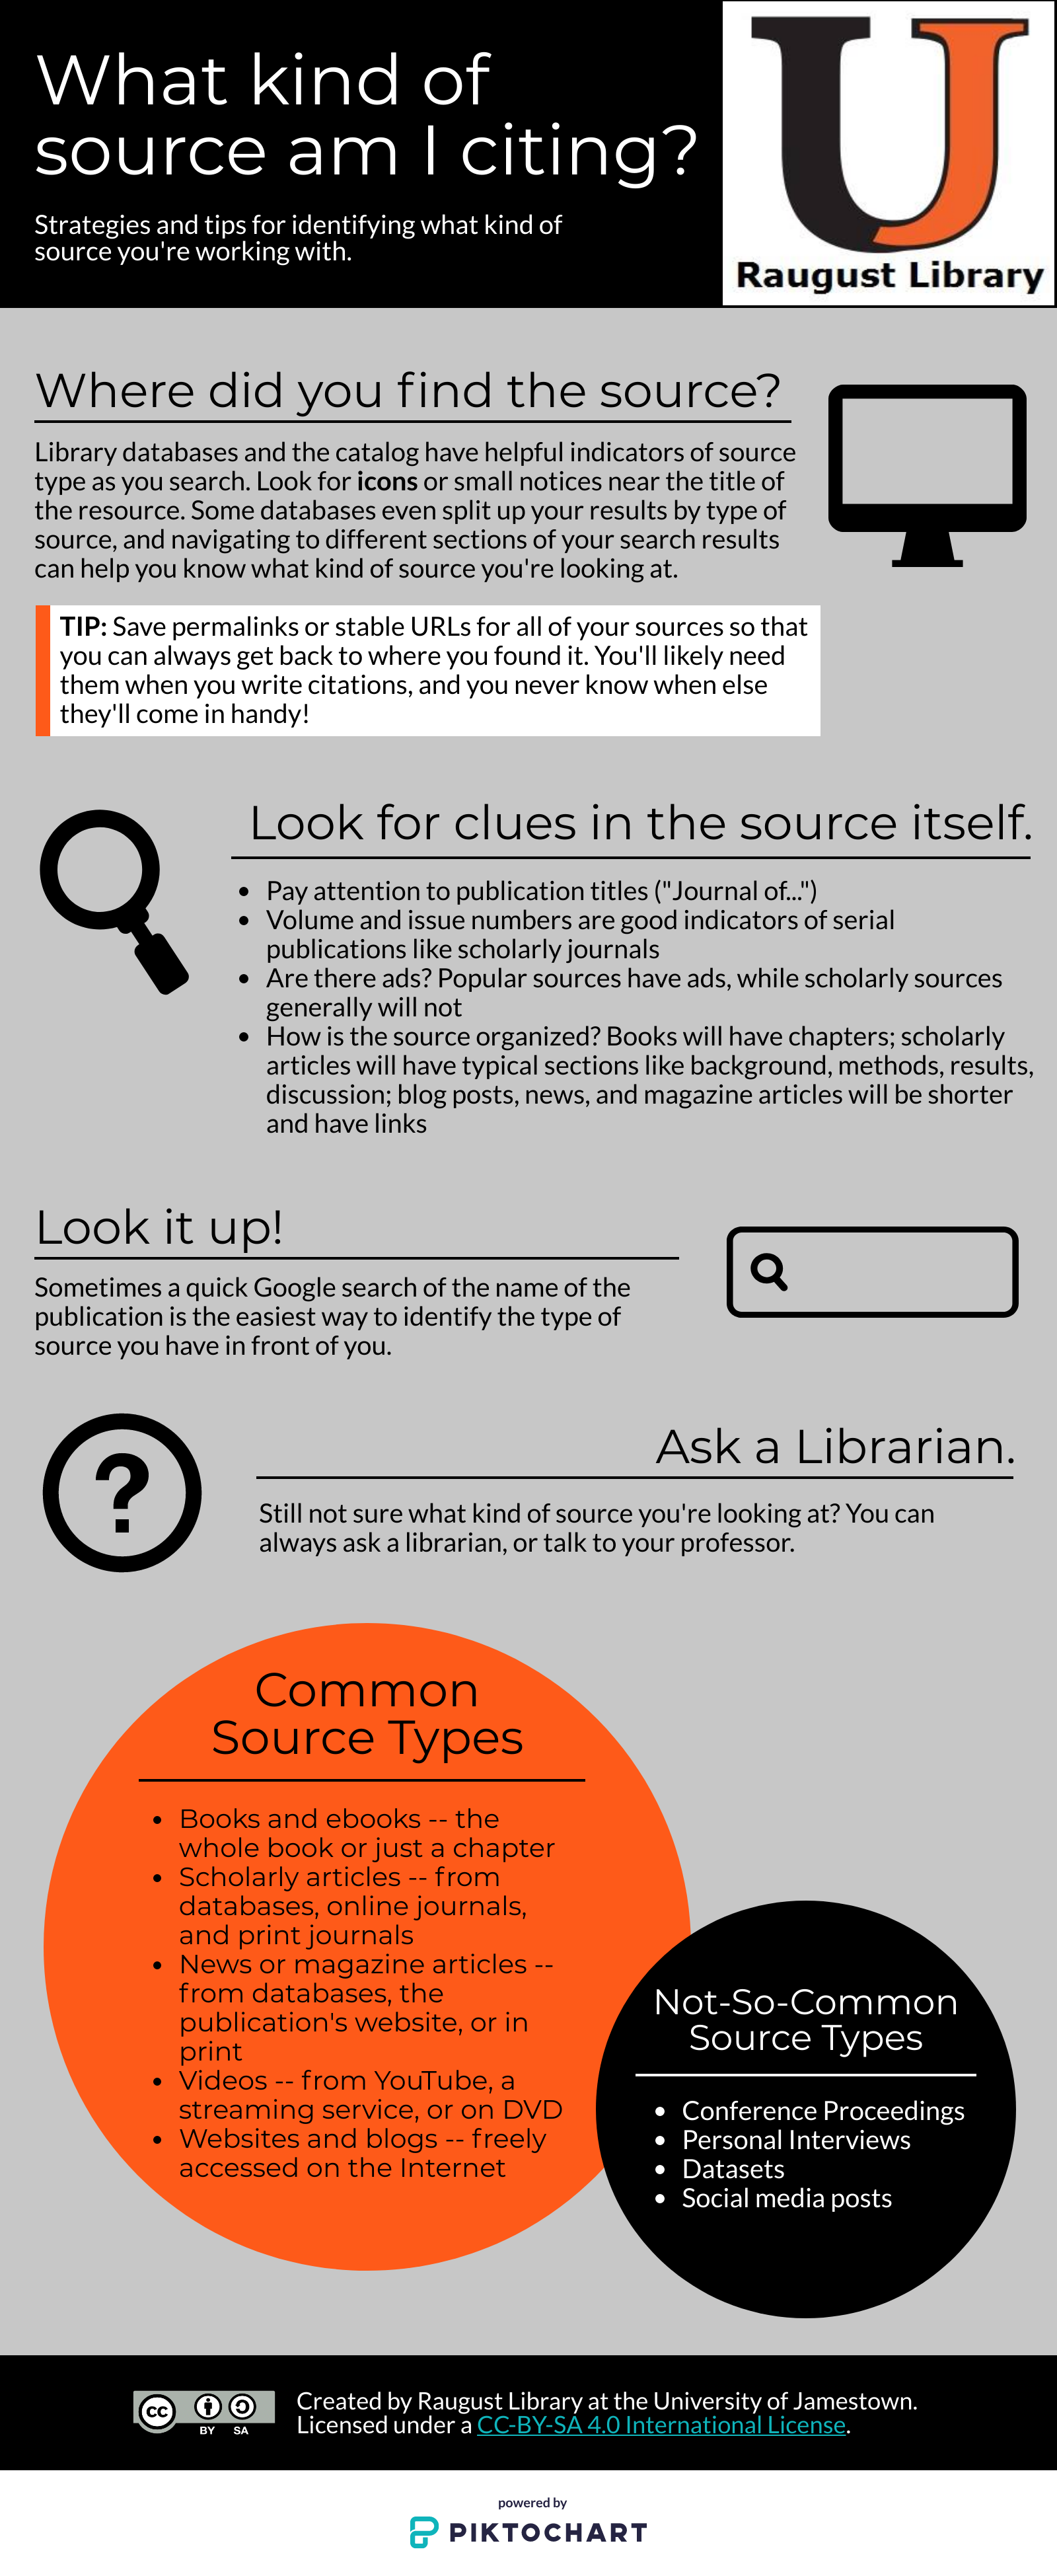 Infographic on identifying source types